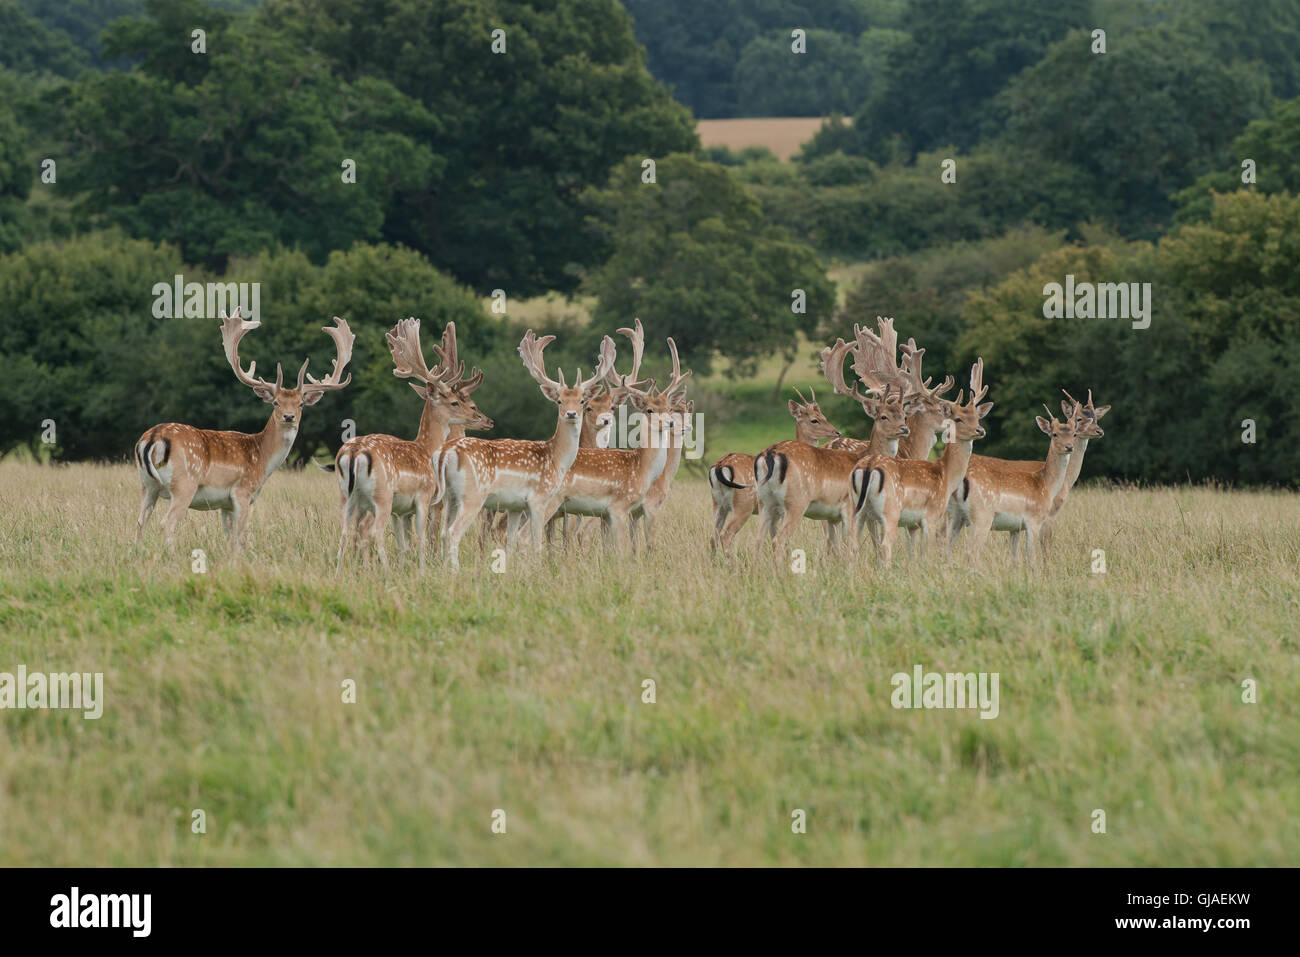 A herd of Fallow Deer  - Dama dama with antlers covered in velvet. Uk - Stock Image